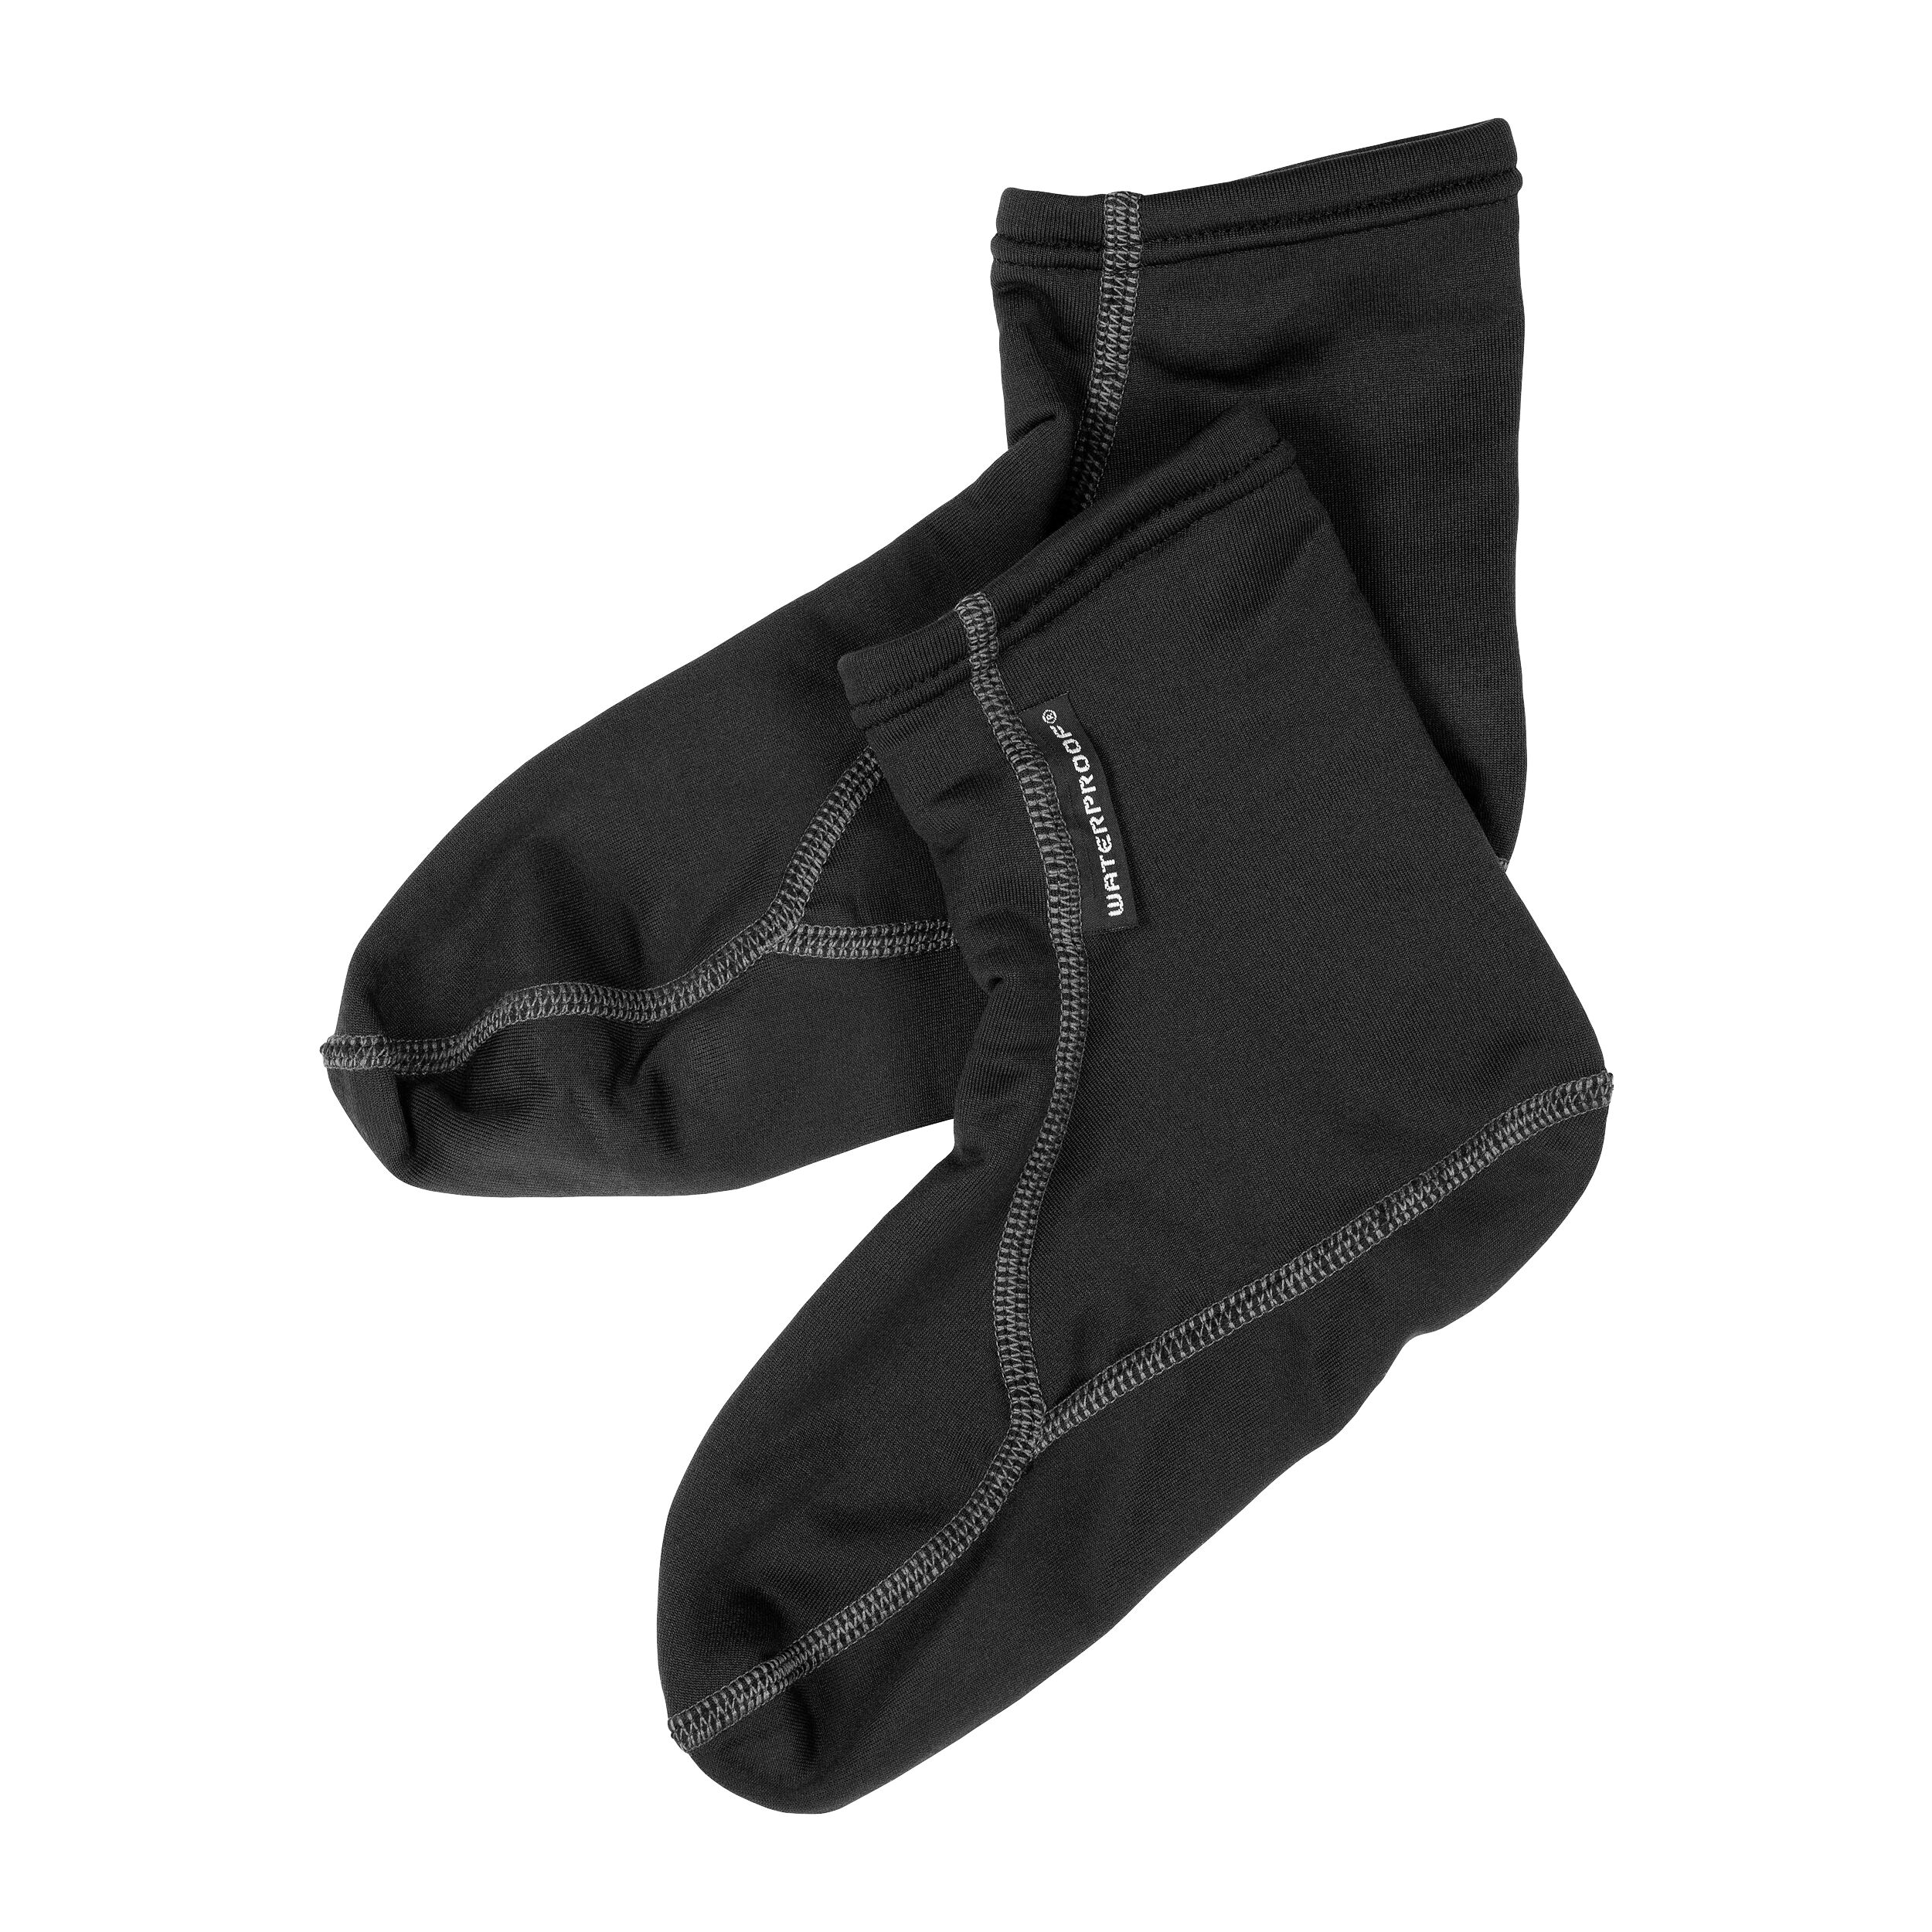 WATERPROOF - Body X Fleece- Socken